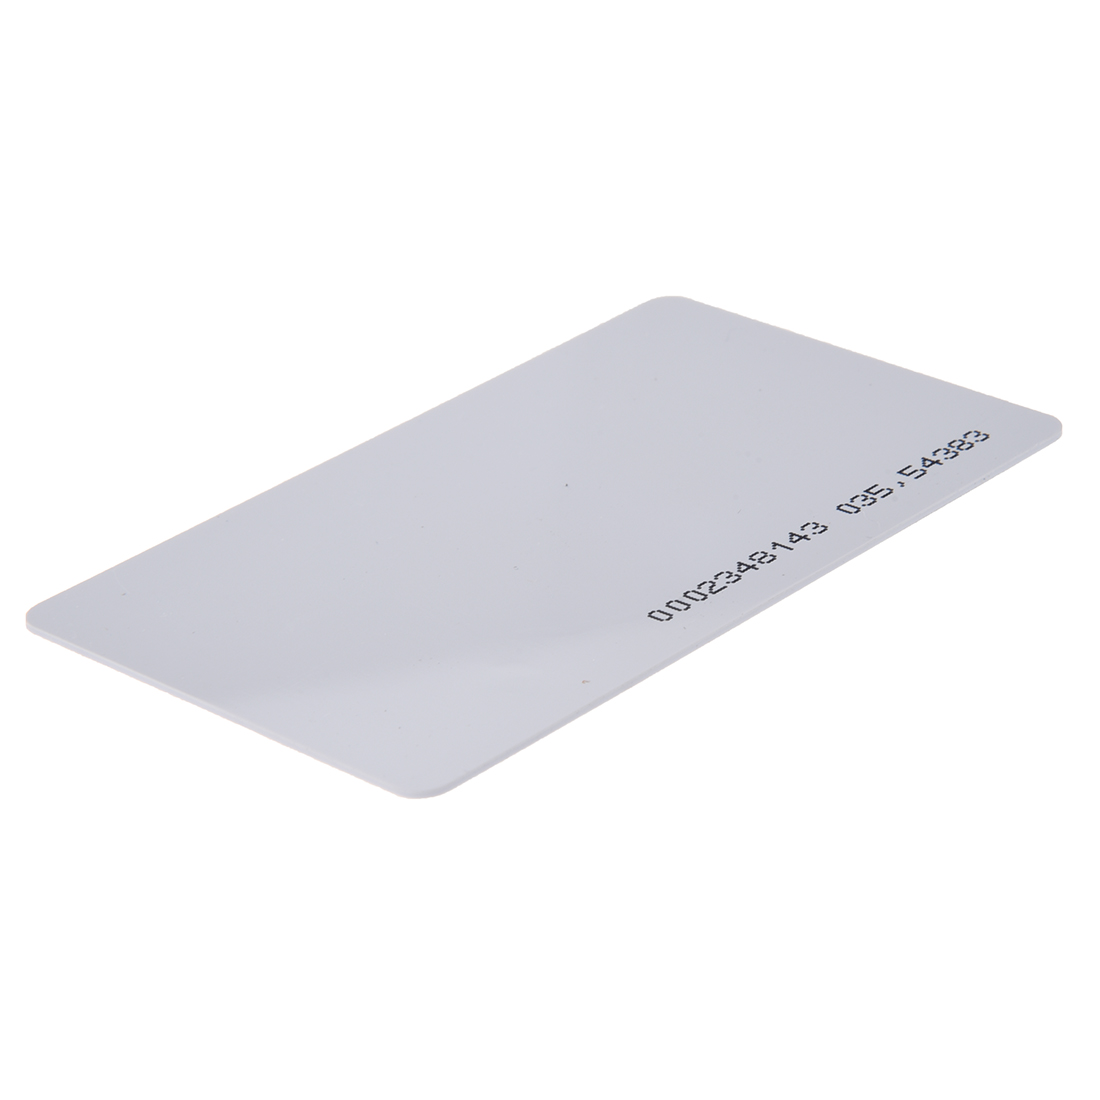 125khz em4100 door entry access blank white proximity rfid clamshell thick card thickness 1 9mm pack of 10 2 Packs 125Khz Door Entry Access Proximity RFID Card Wht 10 Pcs